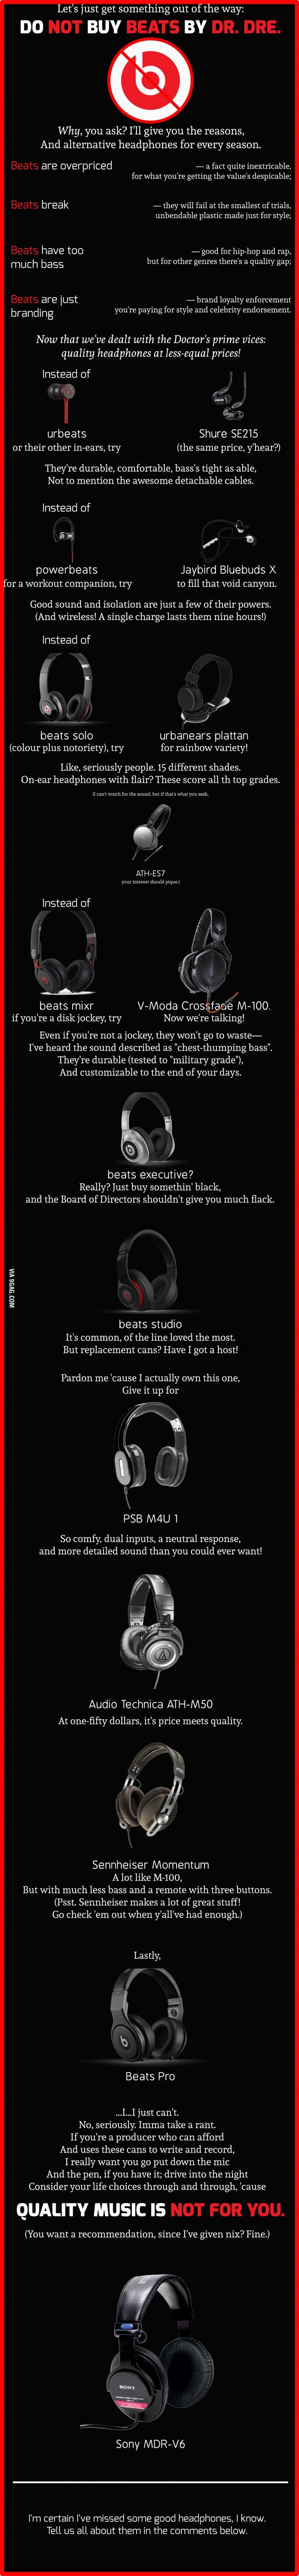 Why You Should Never Buy Beats For Music Production